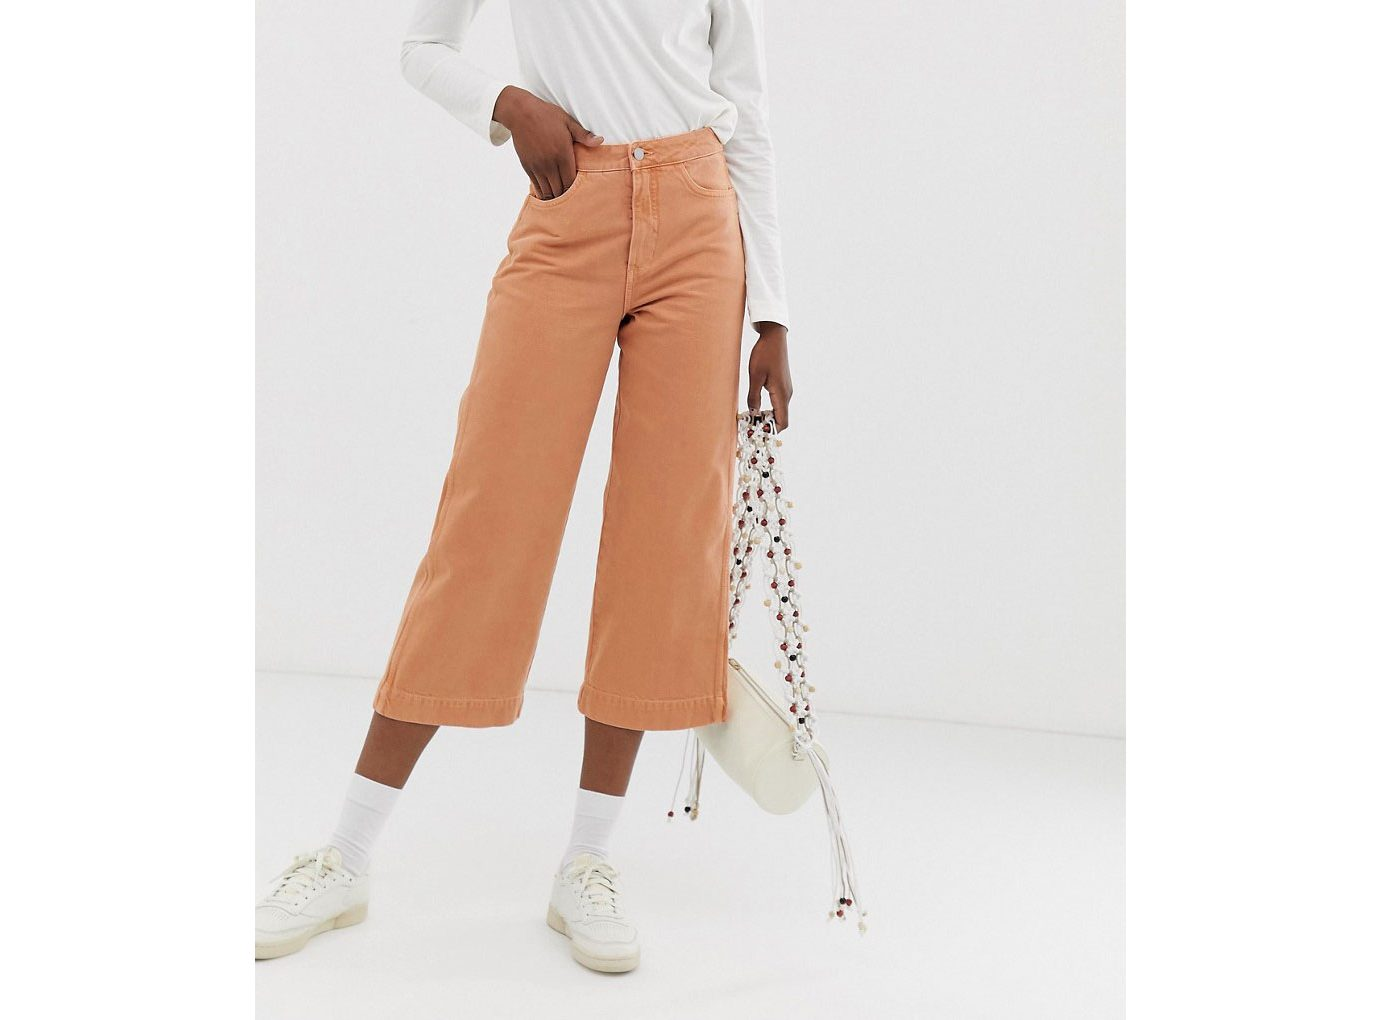 Weekday Denim Wide Leg Jeans in Tangerine